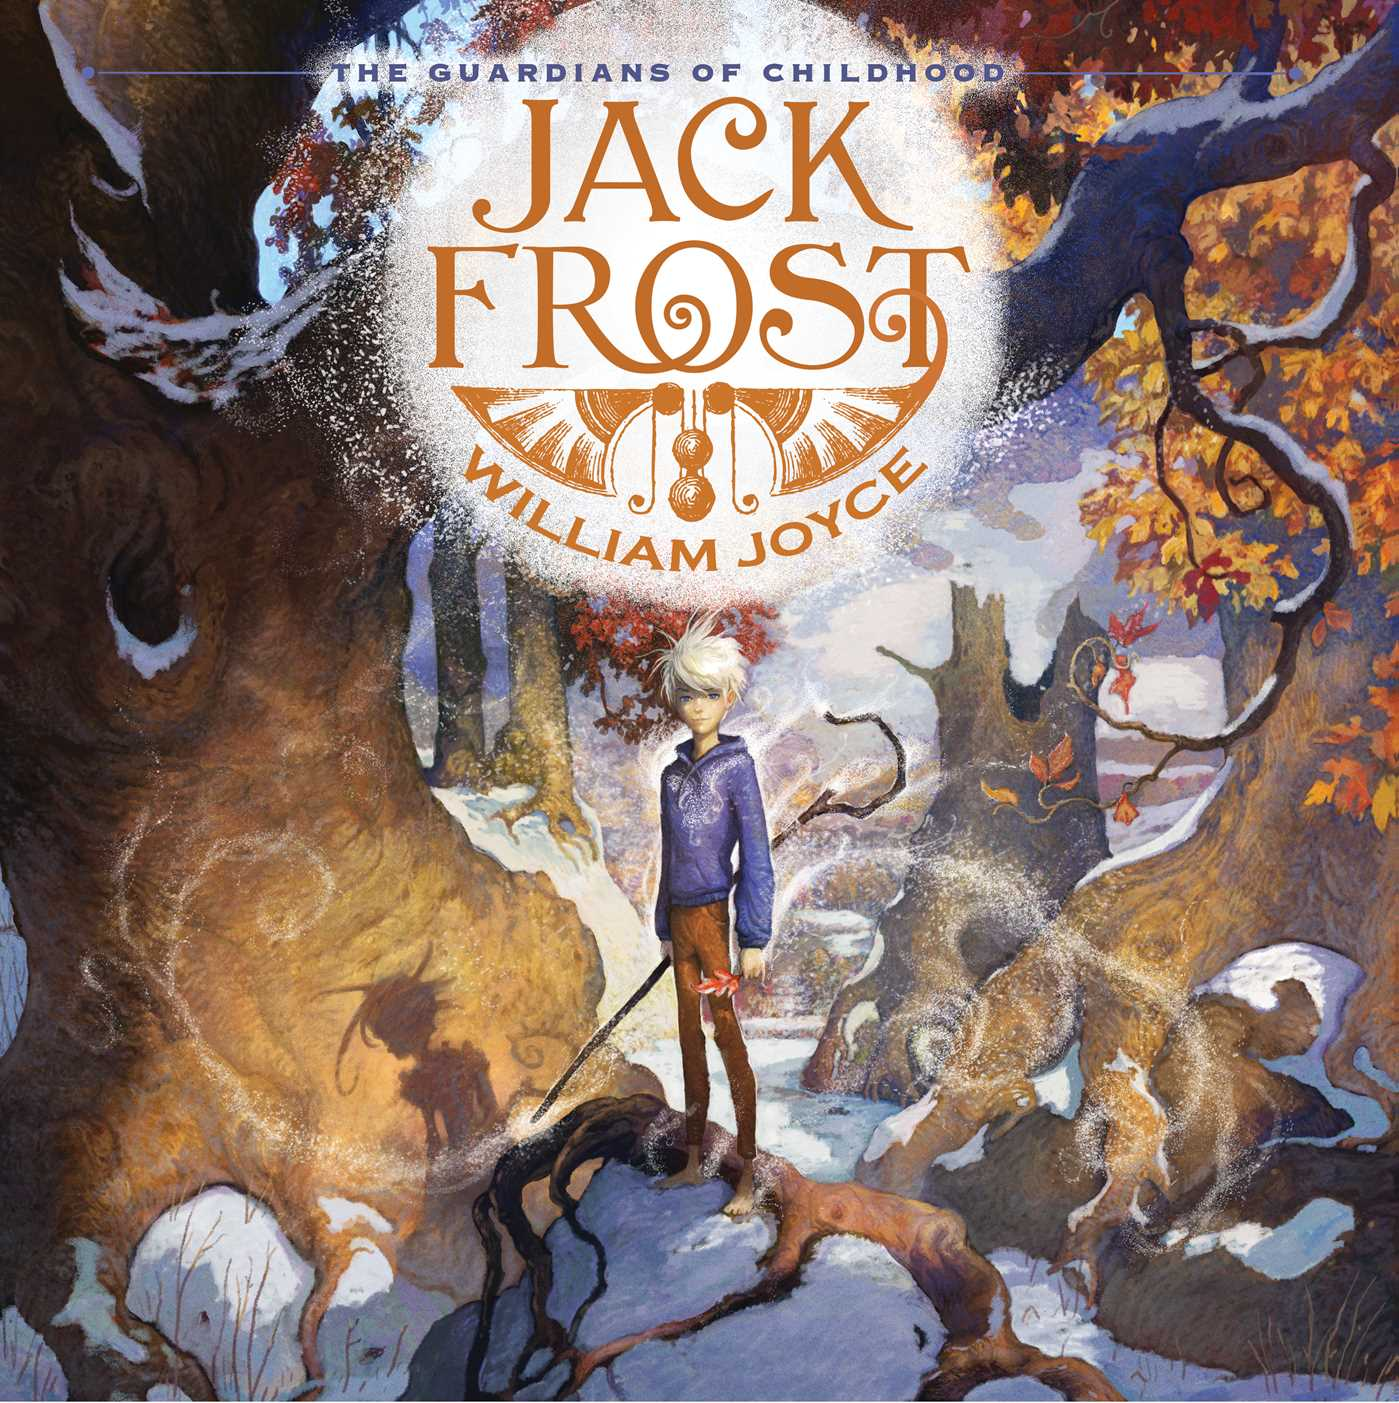 Jack frost 9781481419802 hr